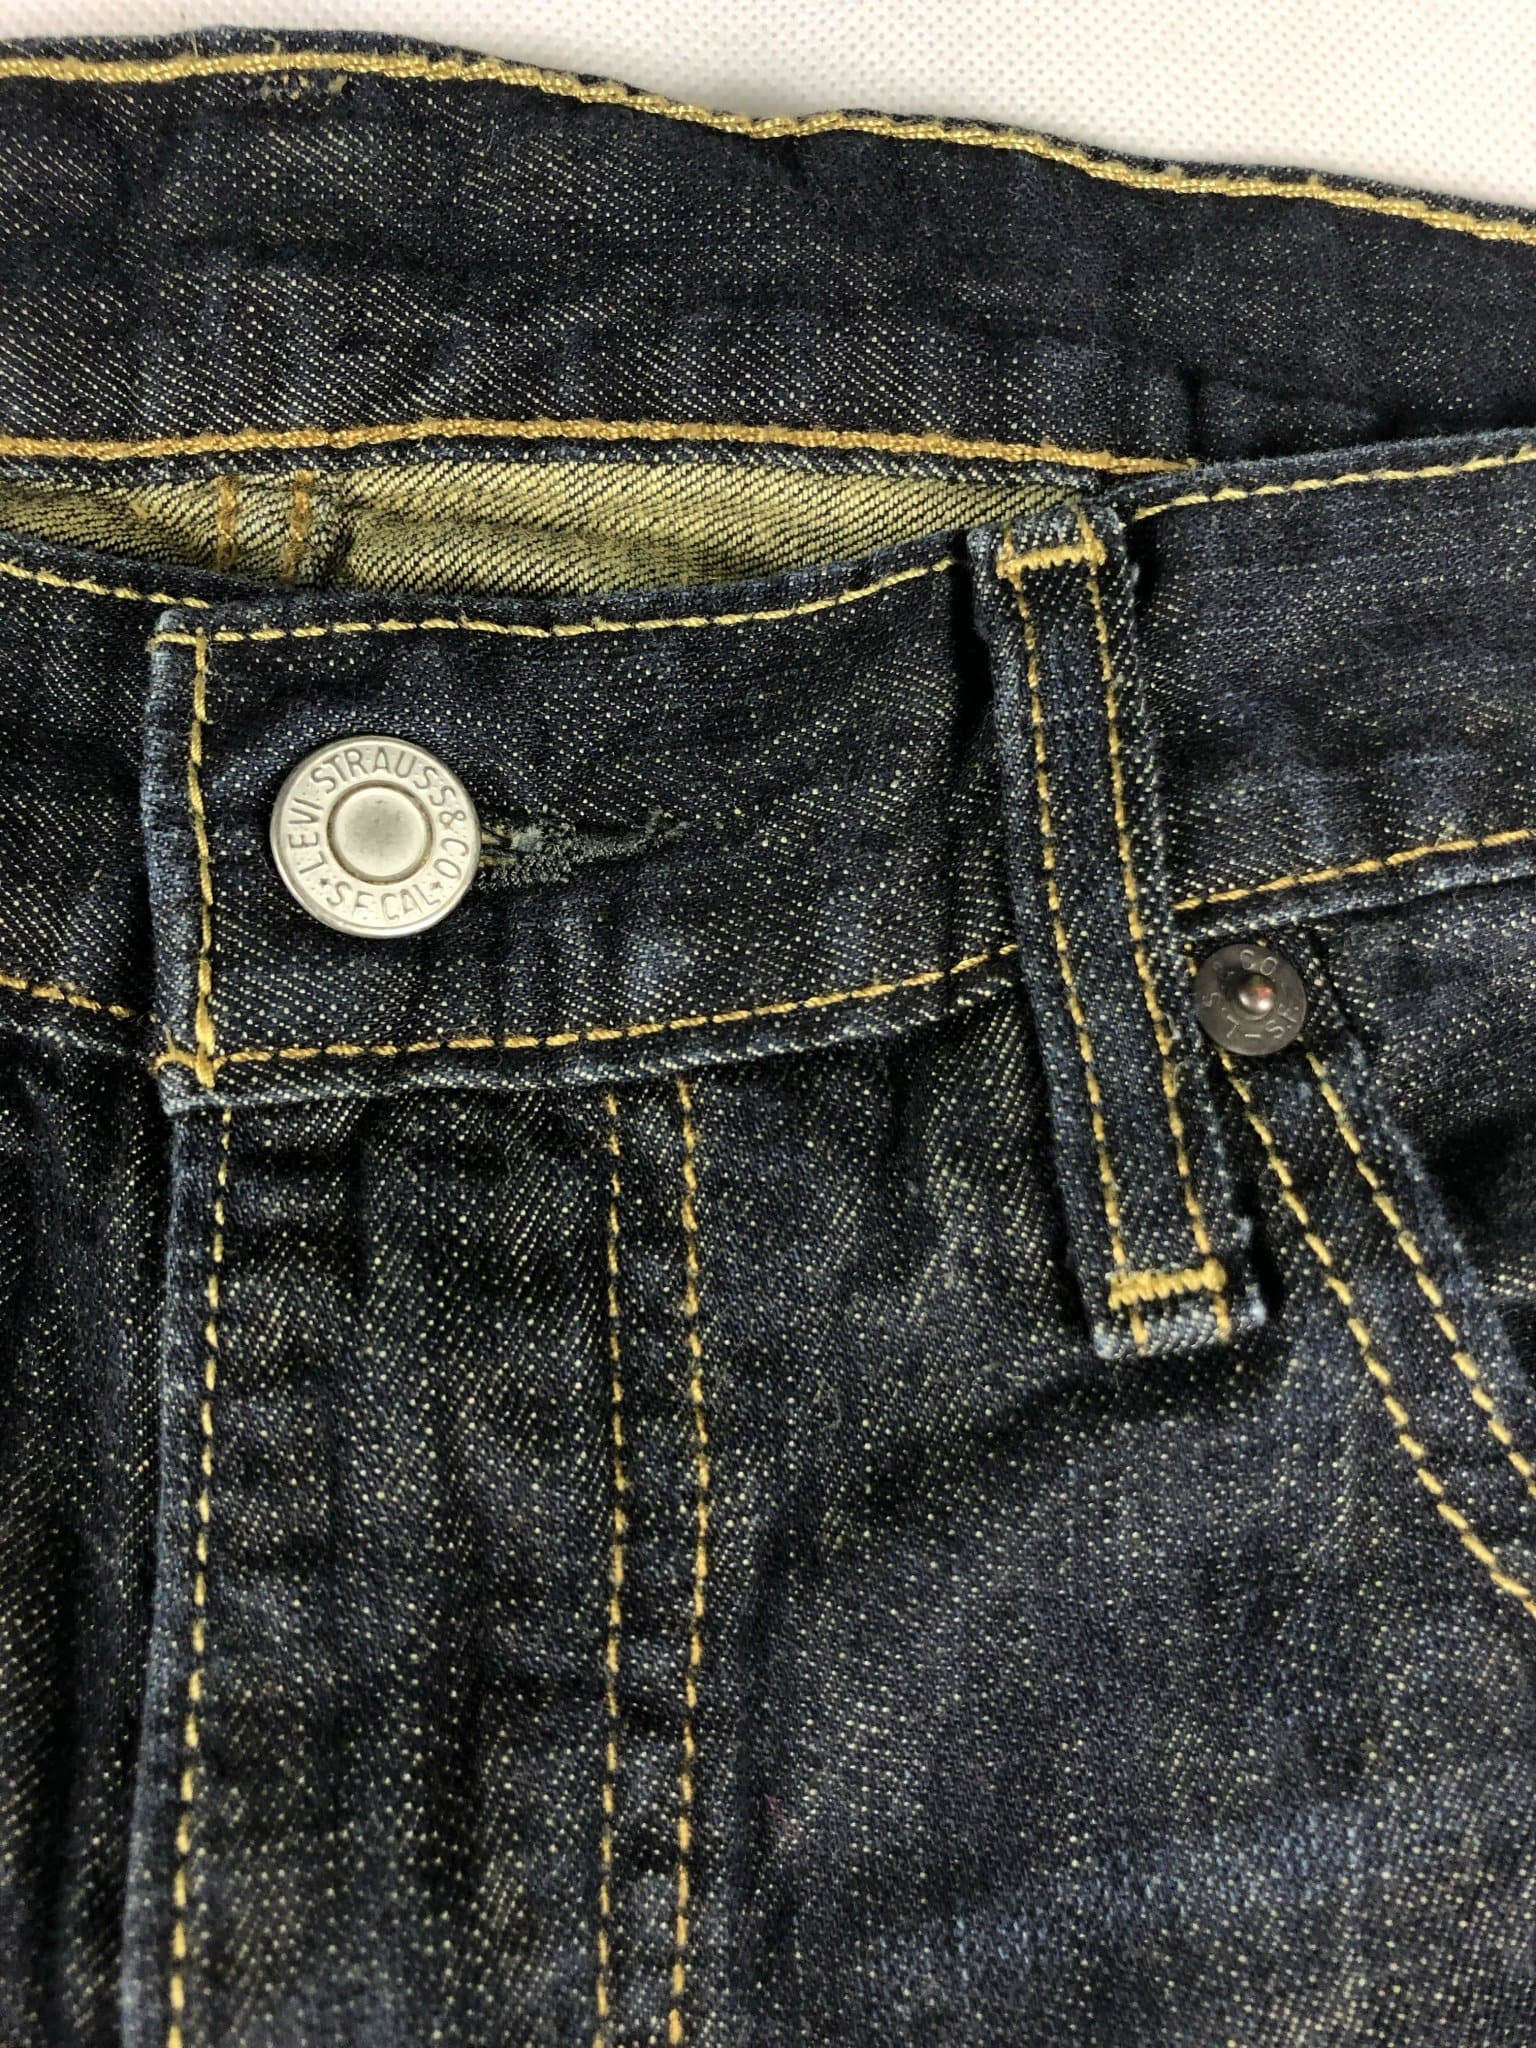 Vintage Levi's 569 Jeans W29 L32 (M15) - Discounted Deals UK